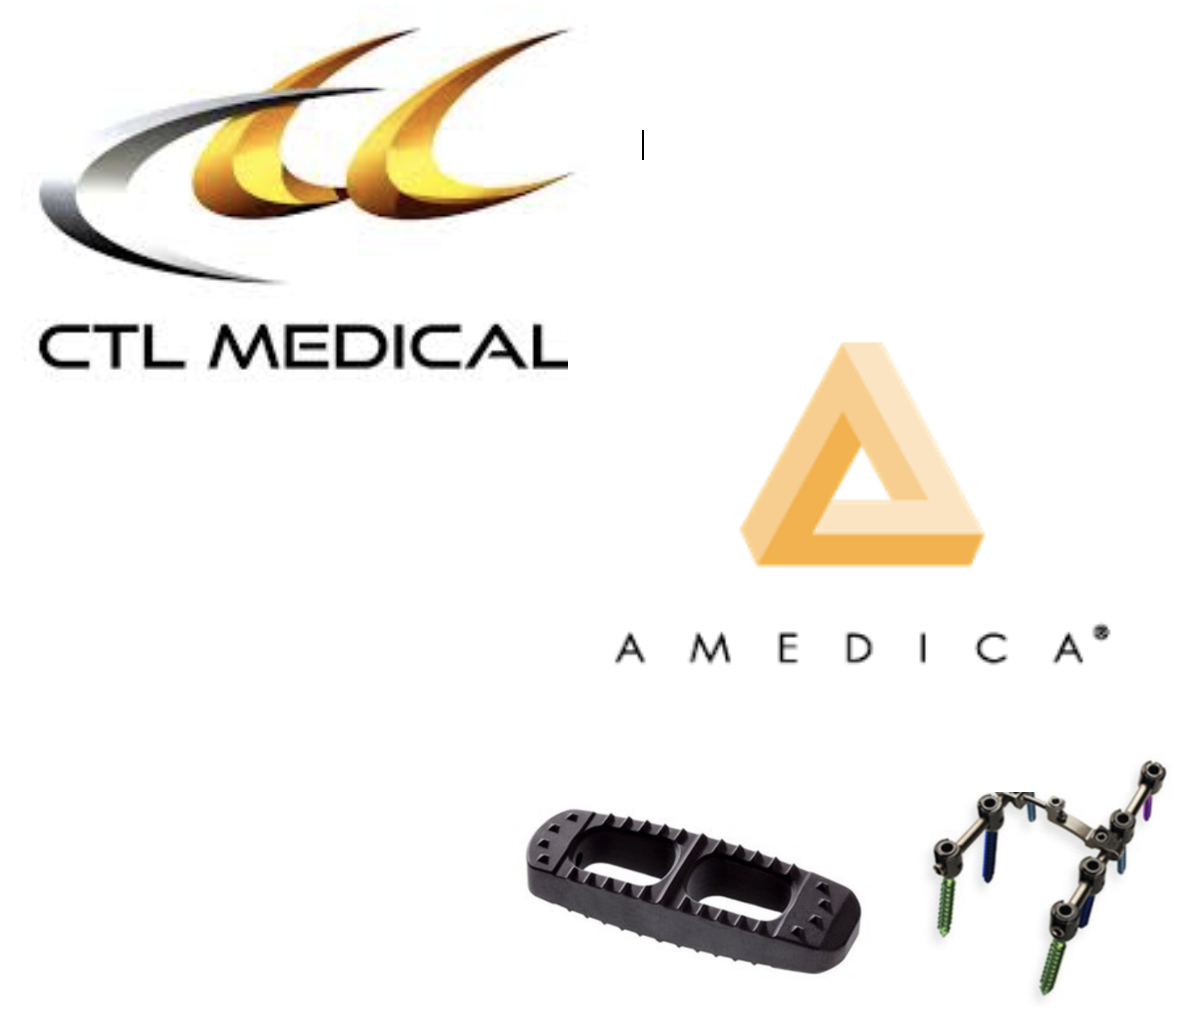 CTL Medical acquires Amedica's spine business and becomes CTL Amedica